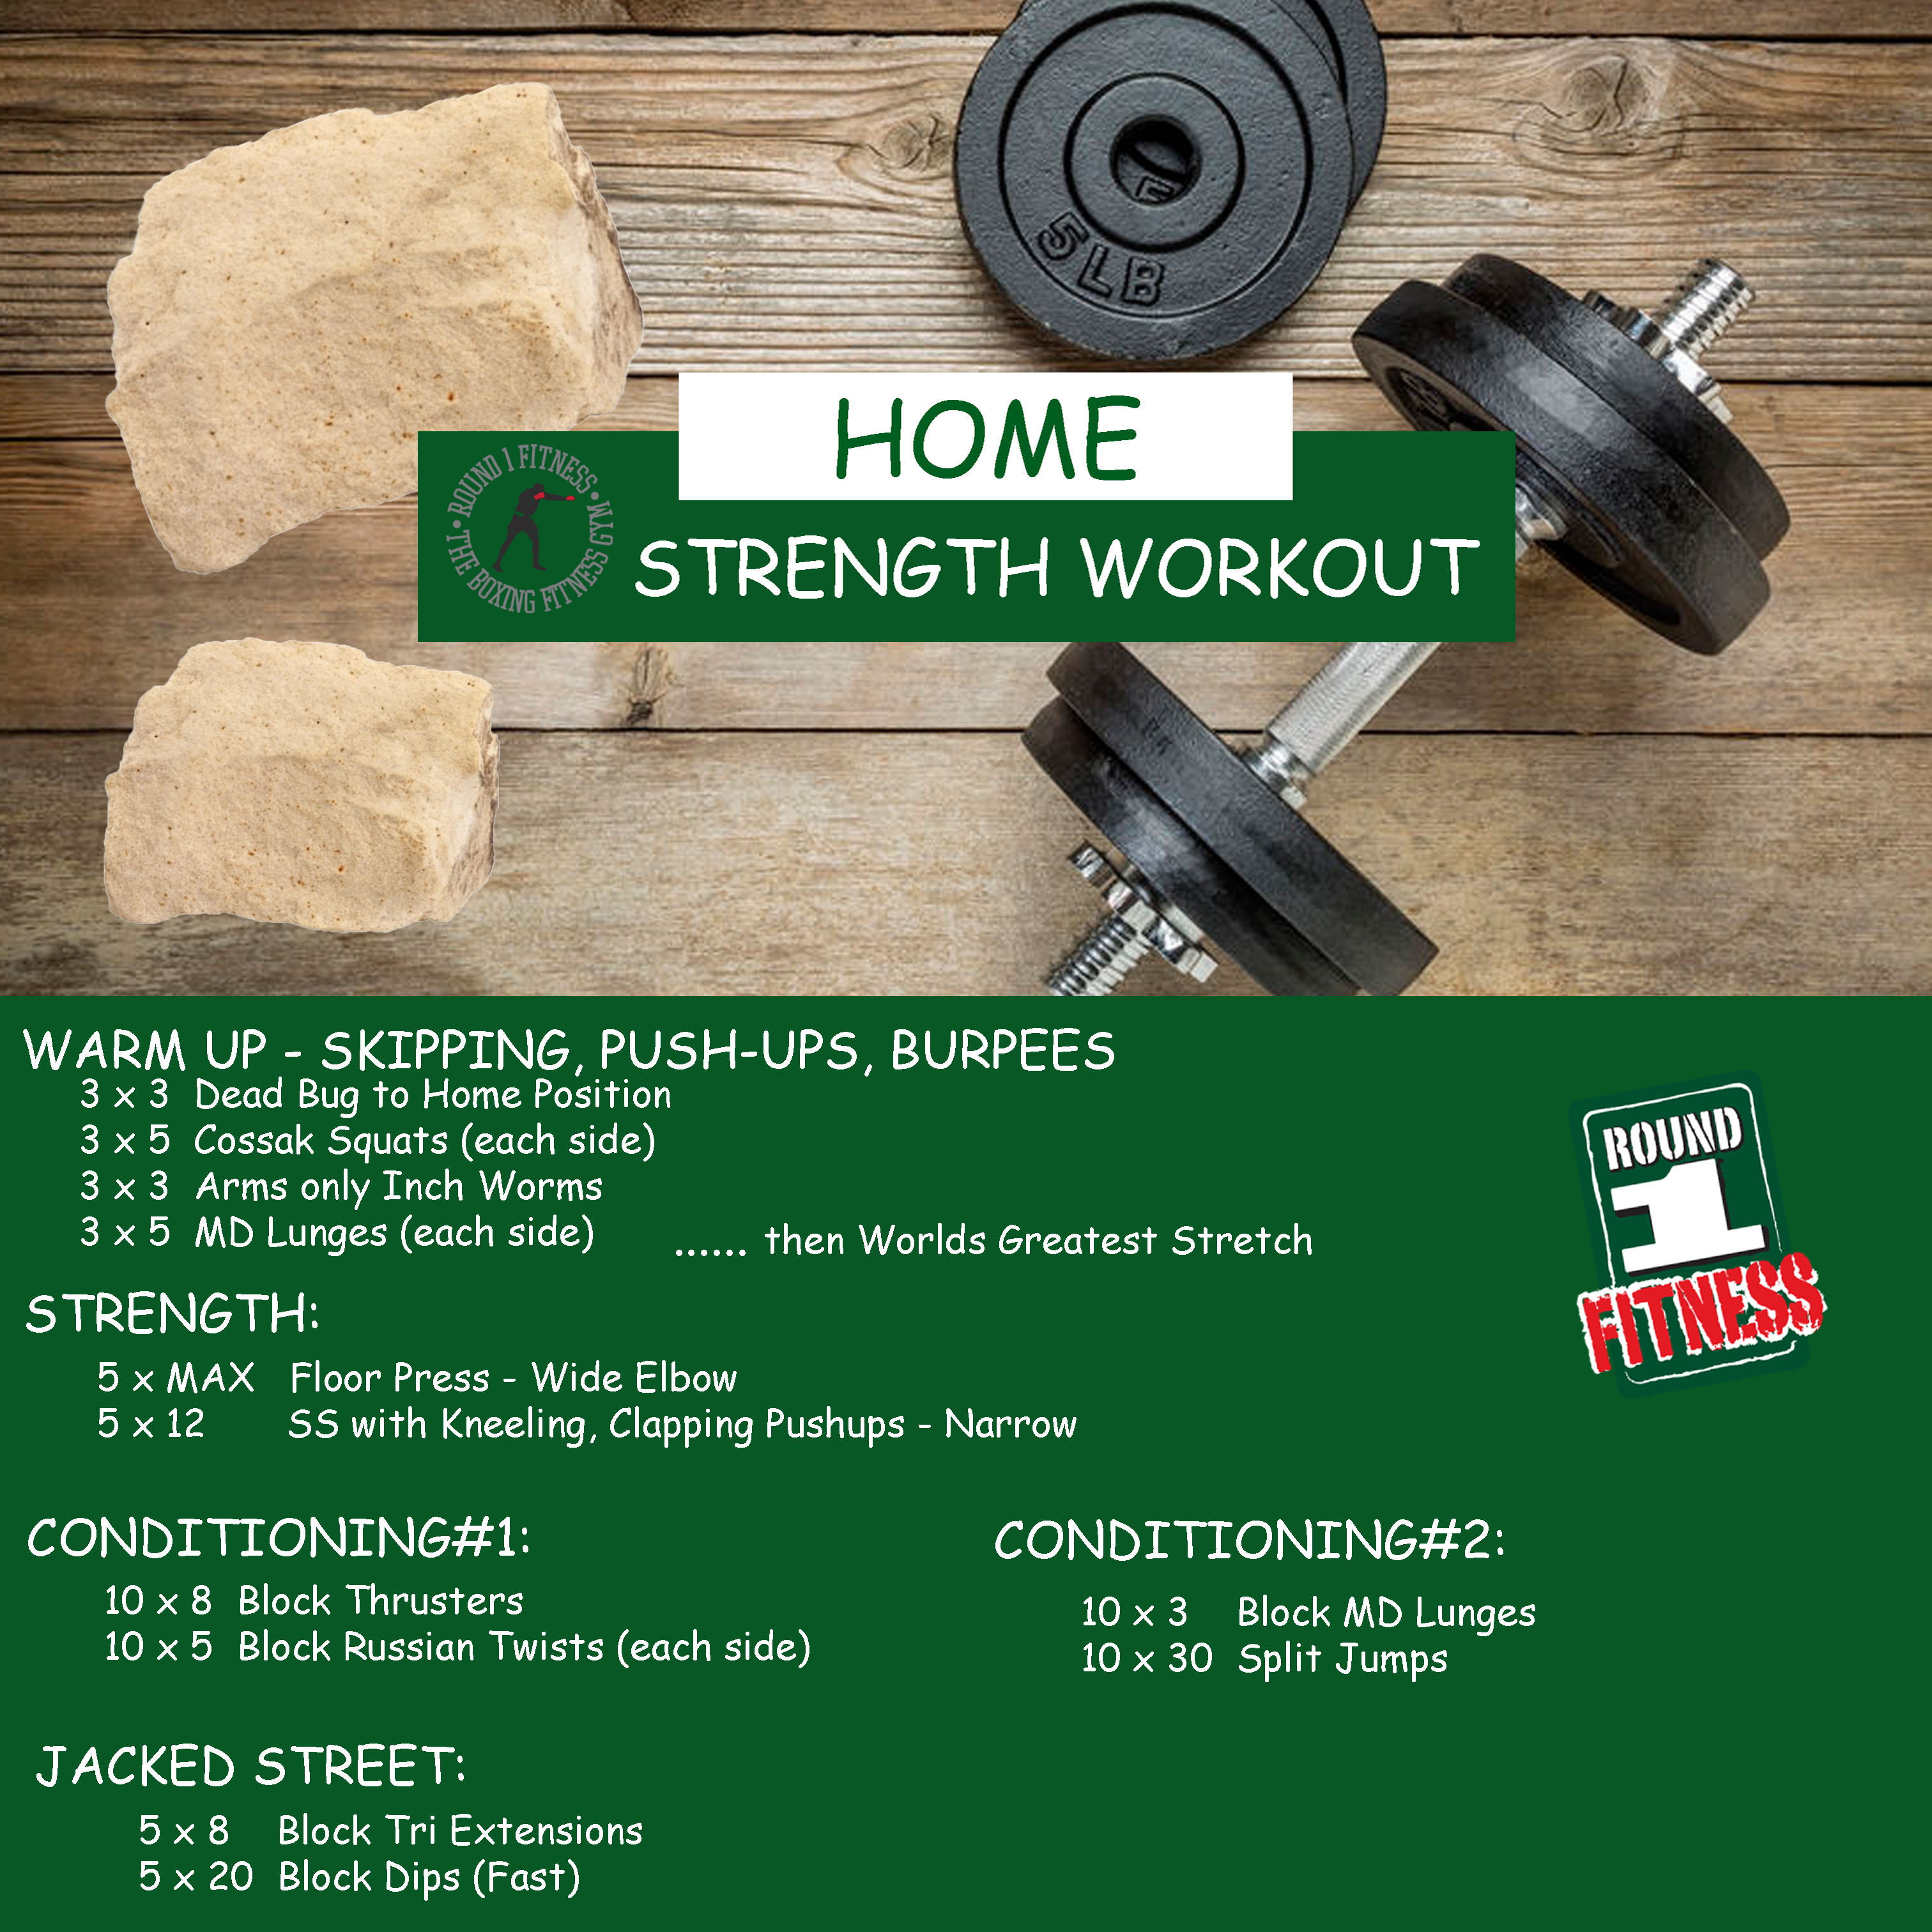 Home Workout:  Monday May 11th